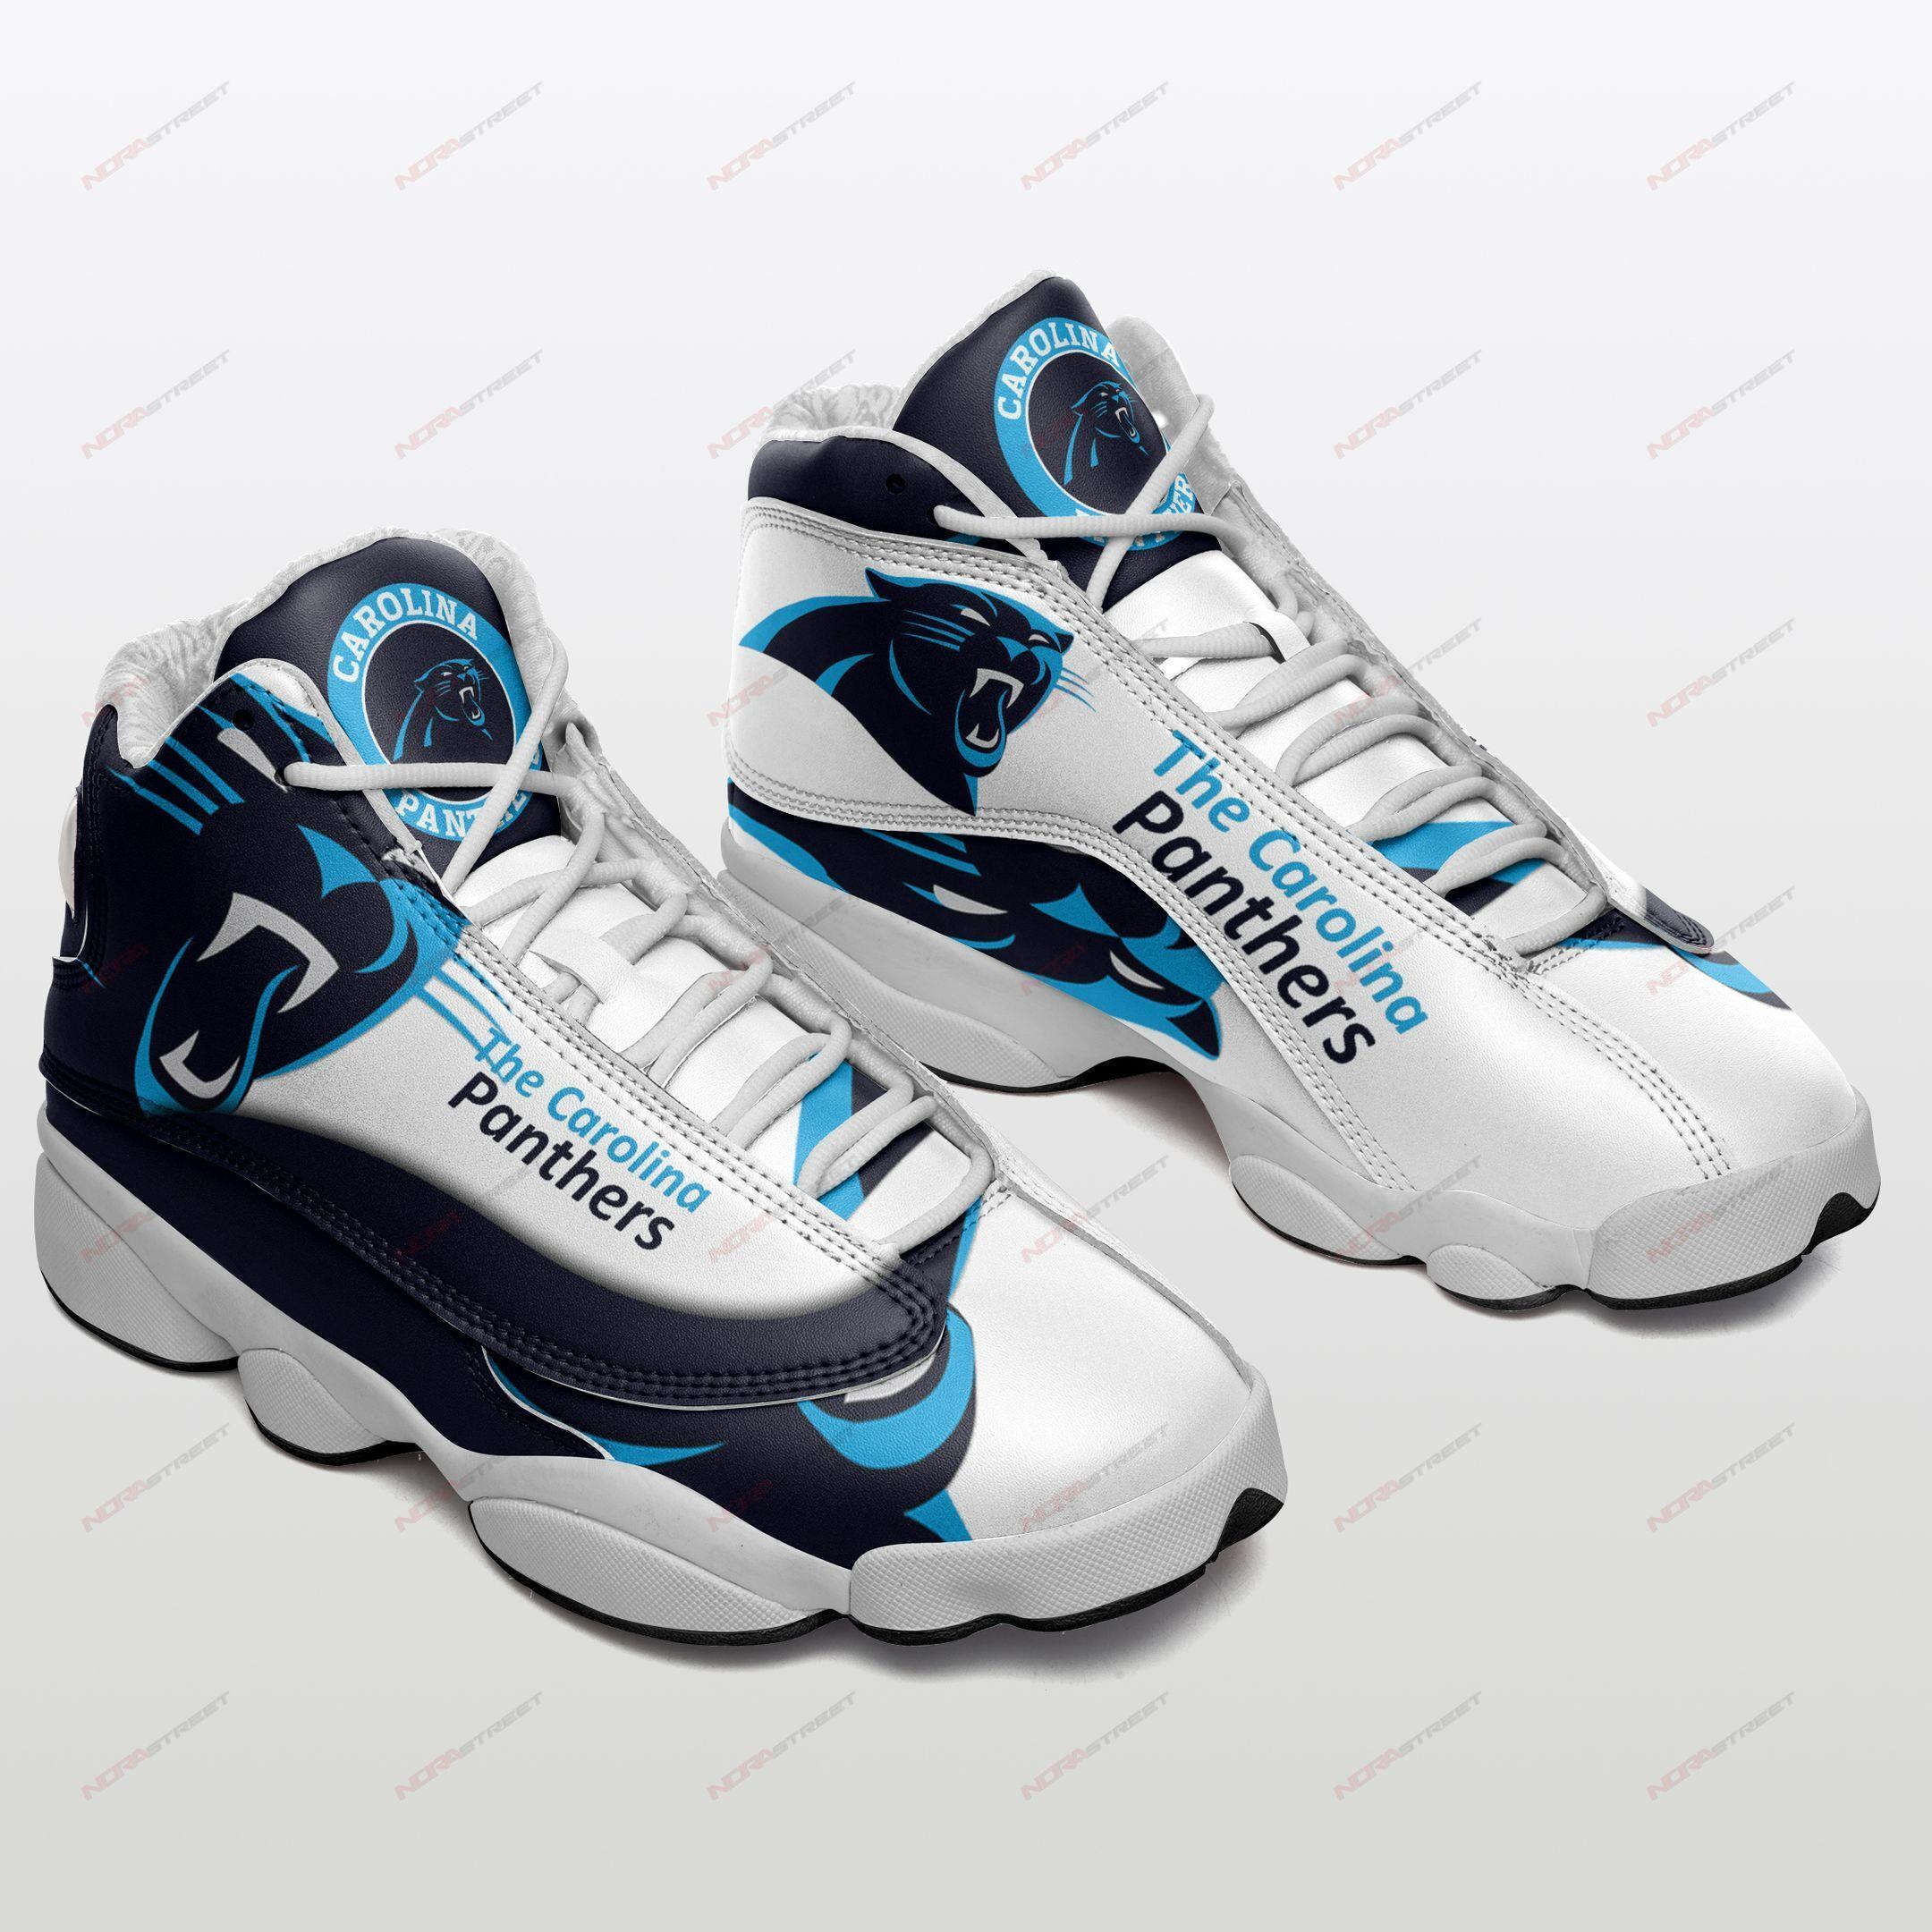 Carolina Panthers Air Jordan 13 Sneakers Sport Shoes Plus Size